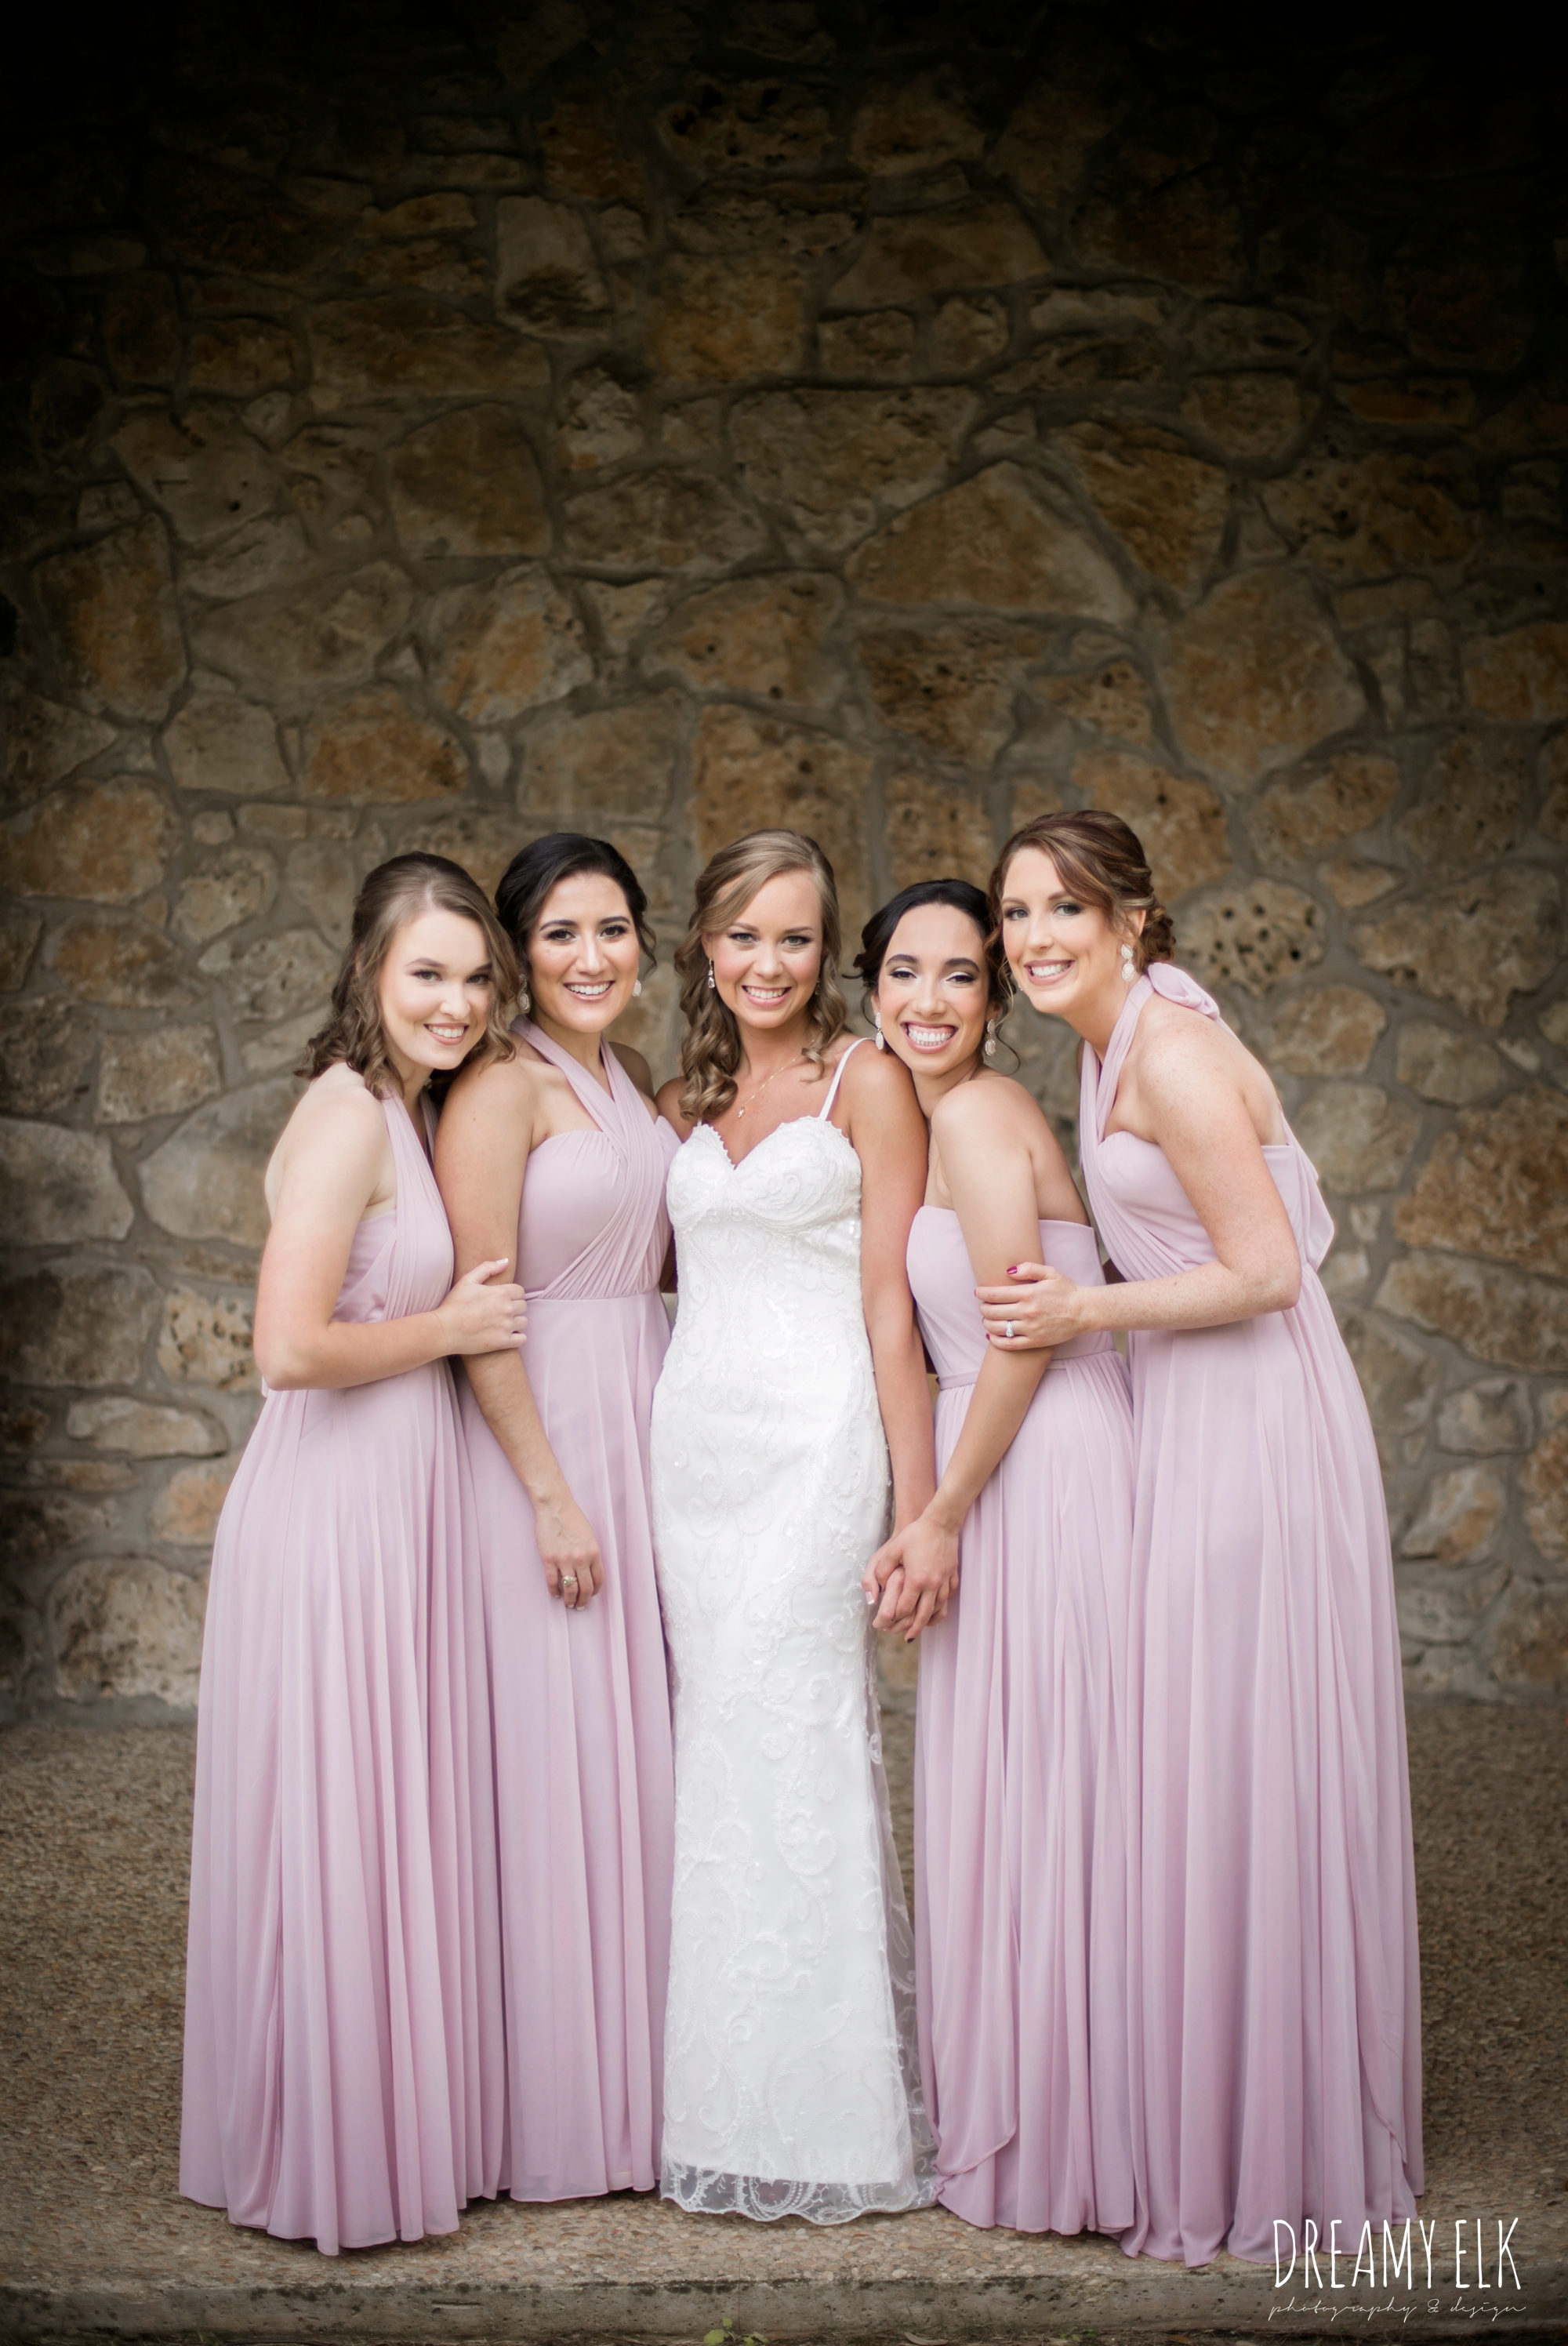 madame makeup and hair, bride and bridesmaids, mix and matched floor length blush bridesmaid dresses, backless column sheath wedding dress, cloudy march wedding photo, canyon springs golf club wedding, san antonio, texas {dreamy elk photography and design}